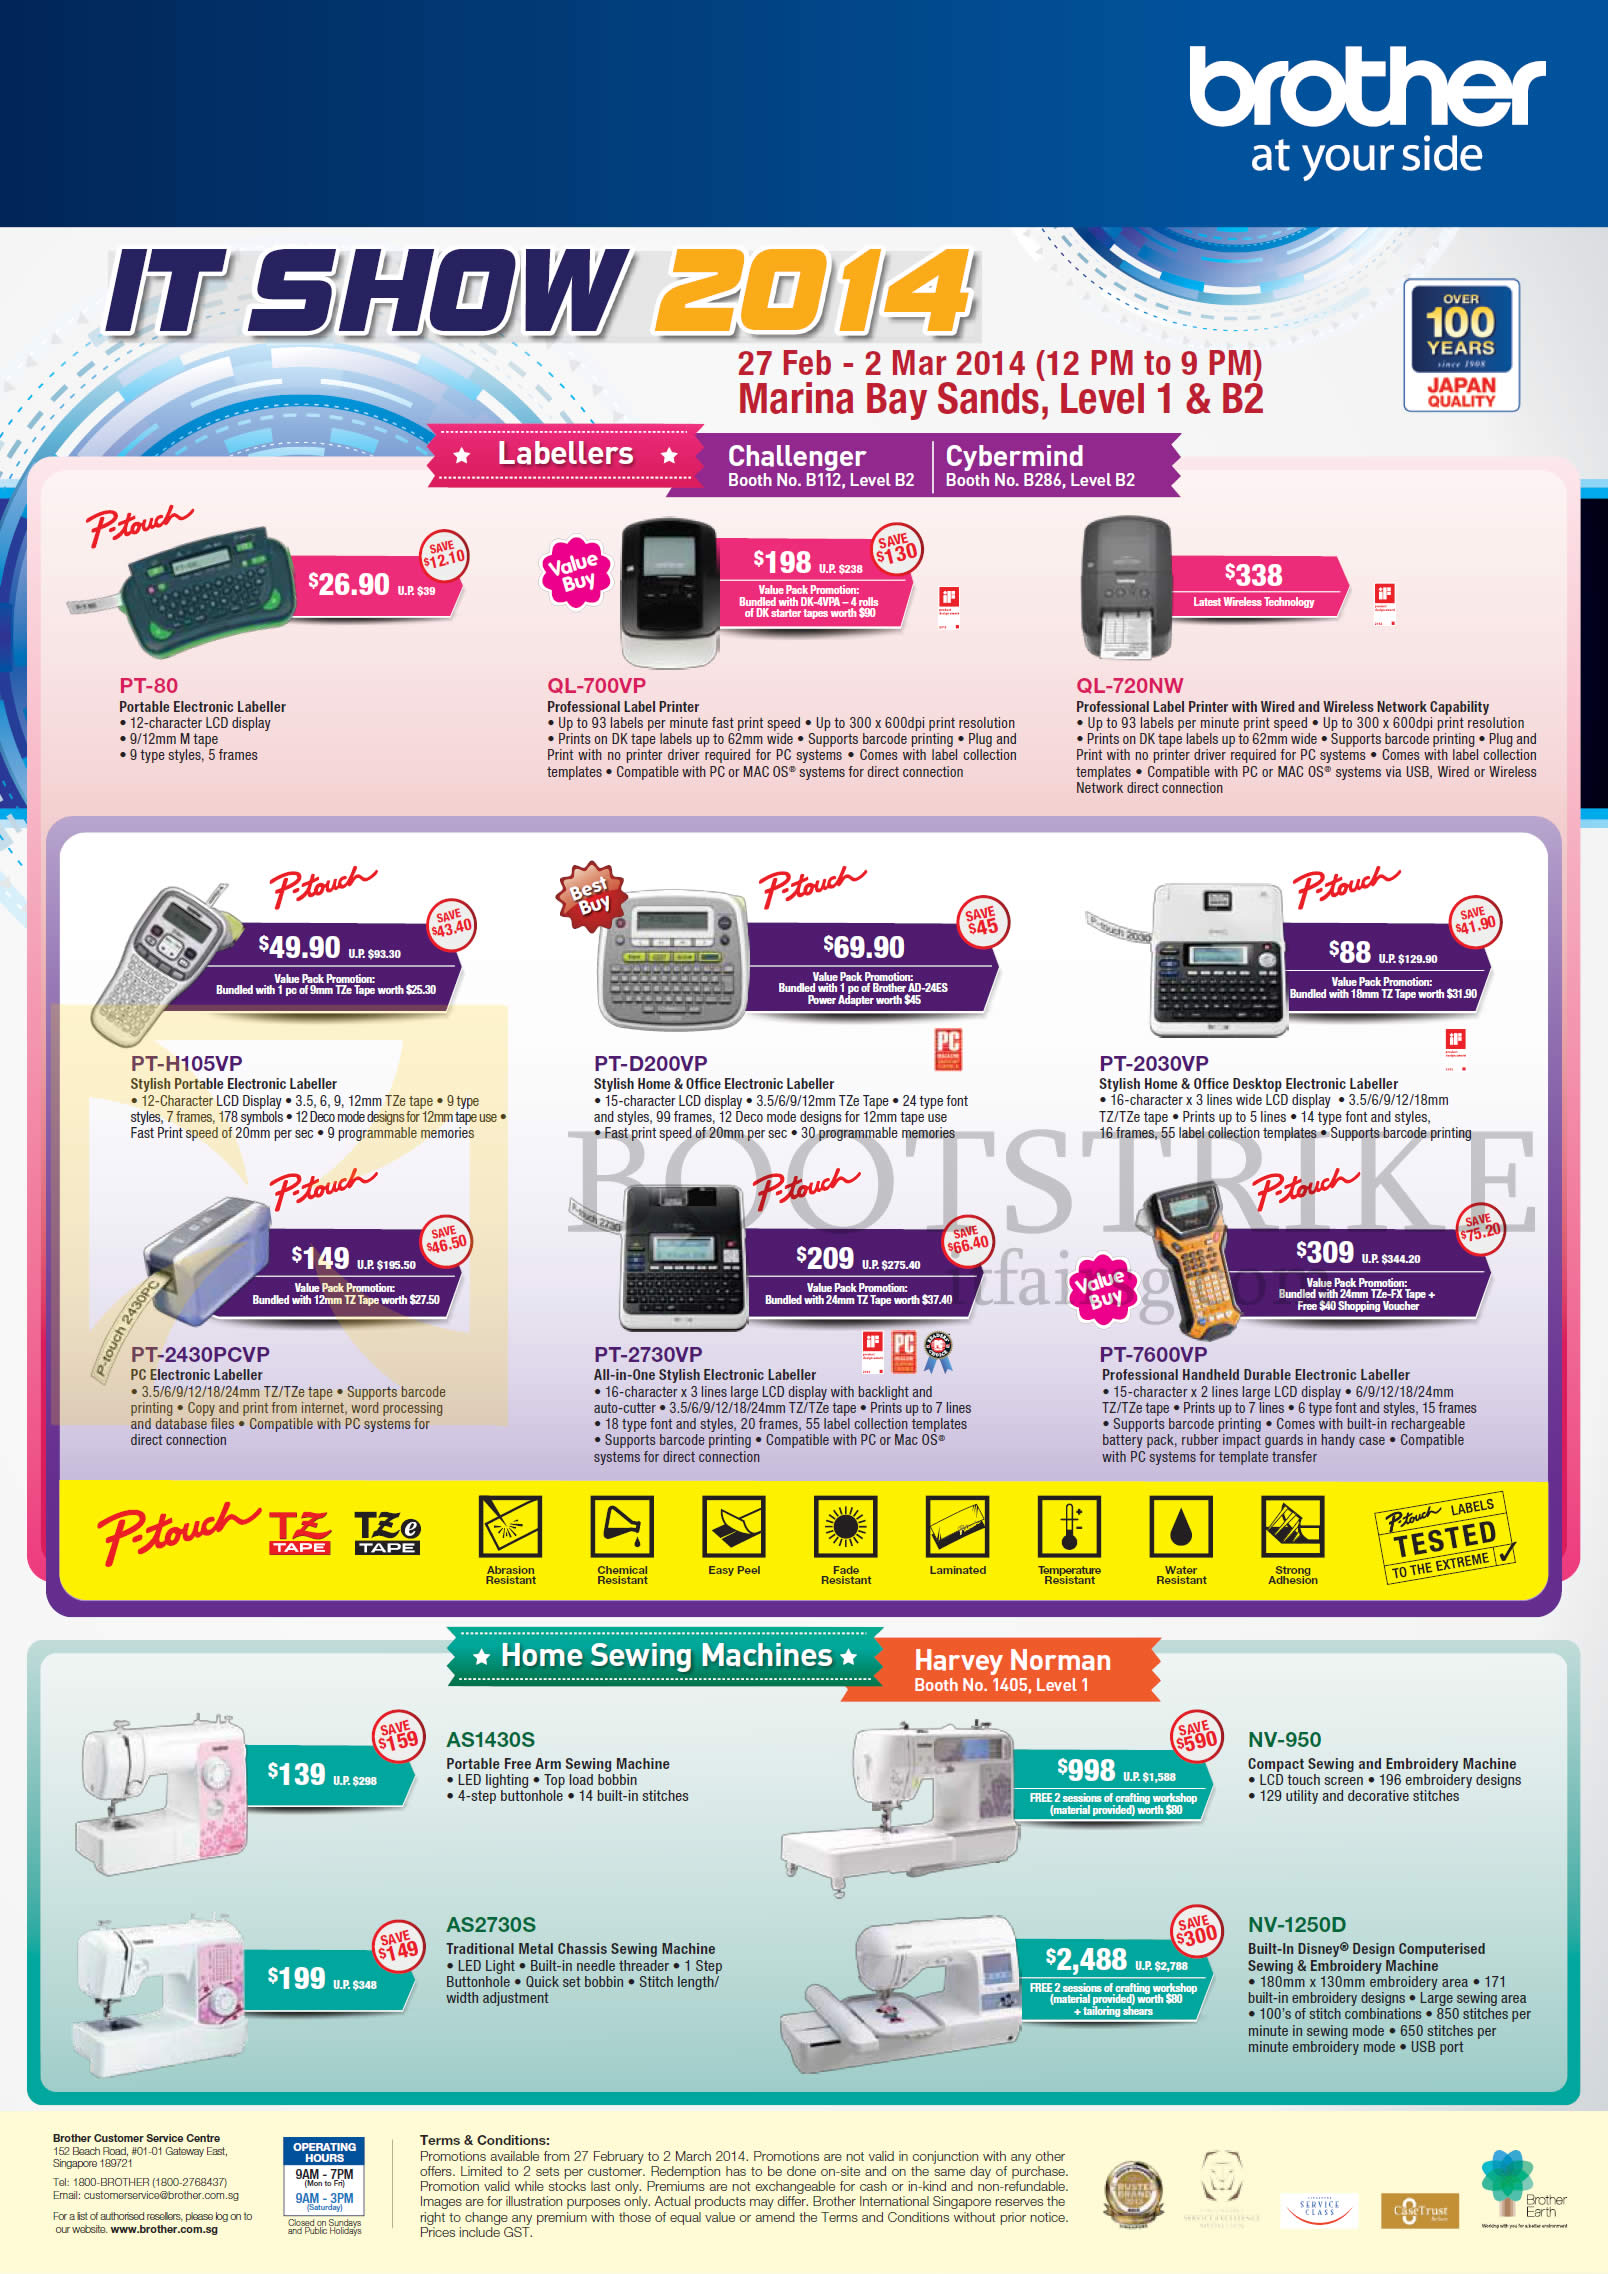 IT SHOW 2014 price list image brochure of Brother Labellers P-Touch, Sewing Machines, PT-80, QL-700VP 720Nw, PT-H105VP D200VP 2030VP 7600VP 2730P 2430CVP AS1430S AS2730S, NV-950 1250D